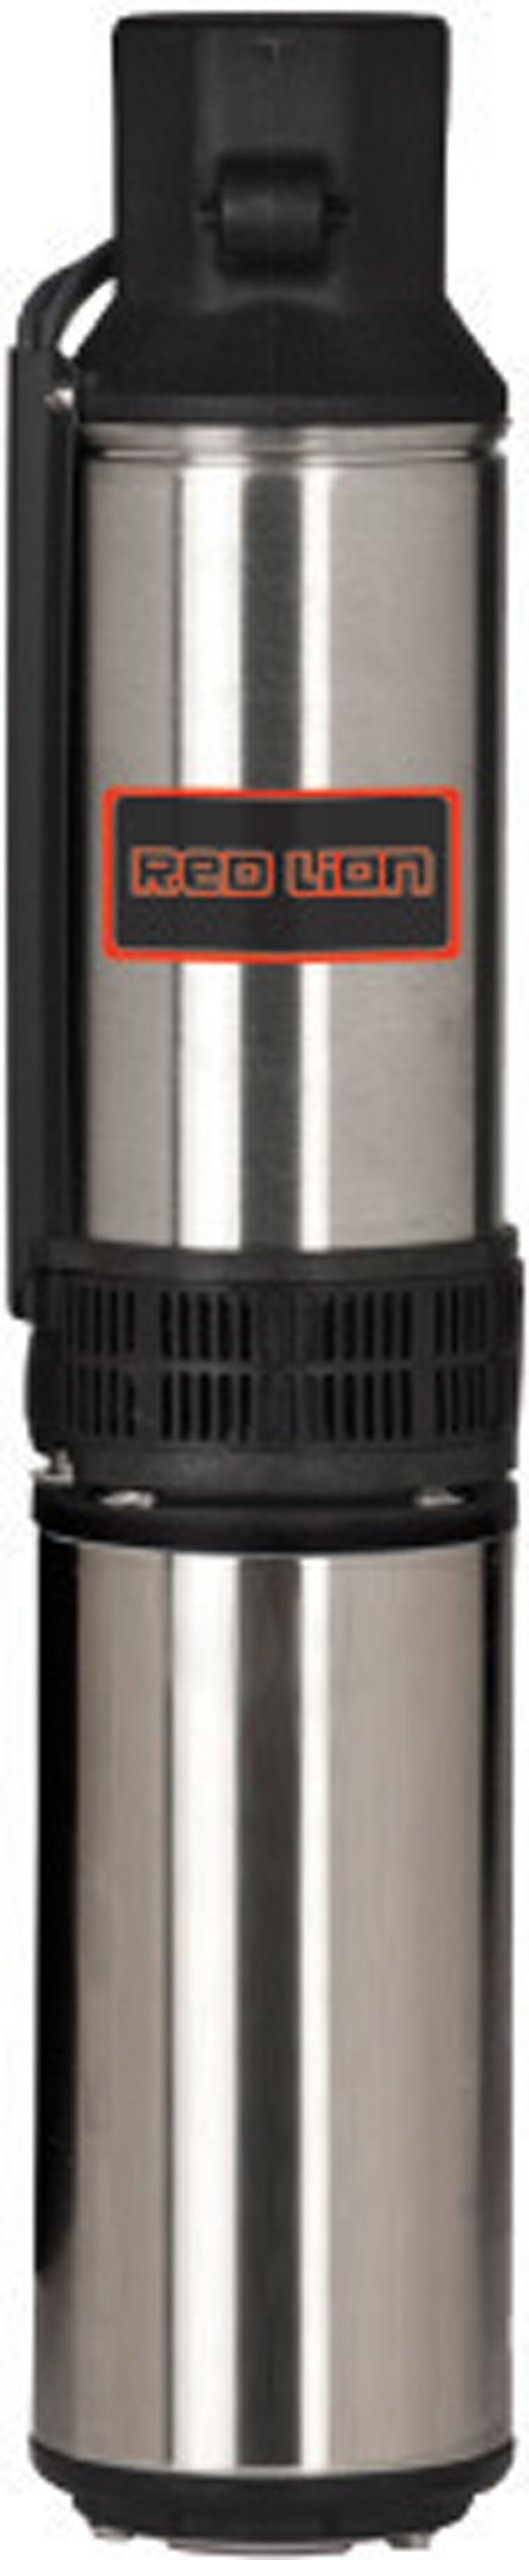 Red Lion 14942405 Submersible Deep Well Pump with Control Box, 1/2-HP 12-GPM 3-Wire 230-Volt, Stainless Steel